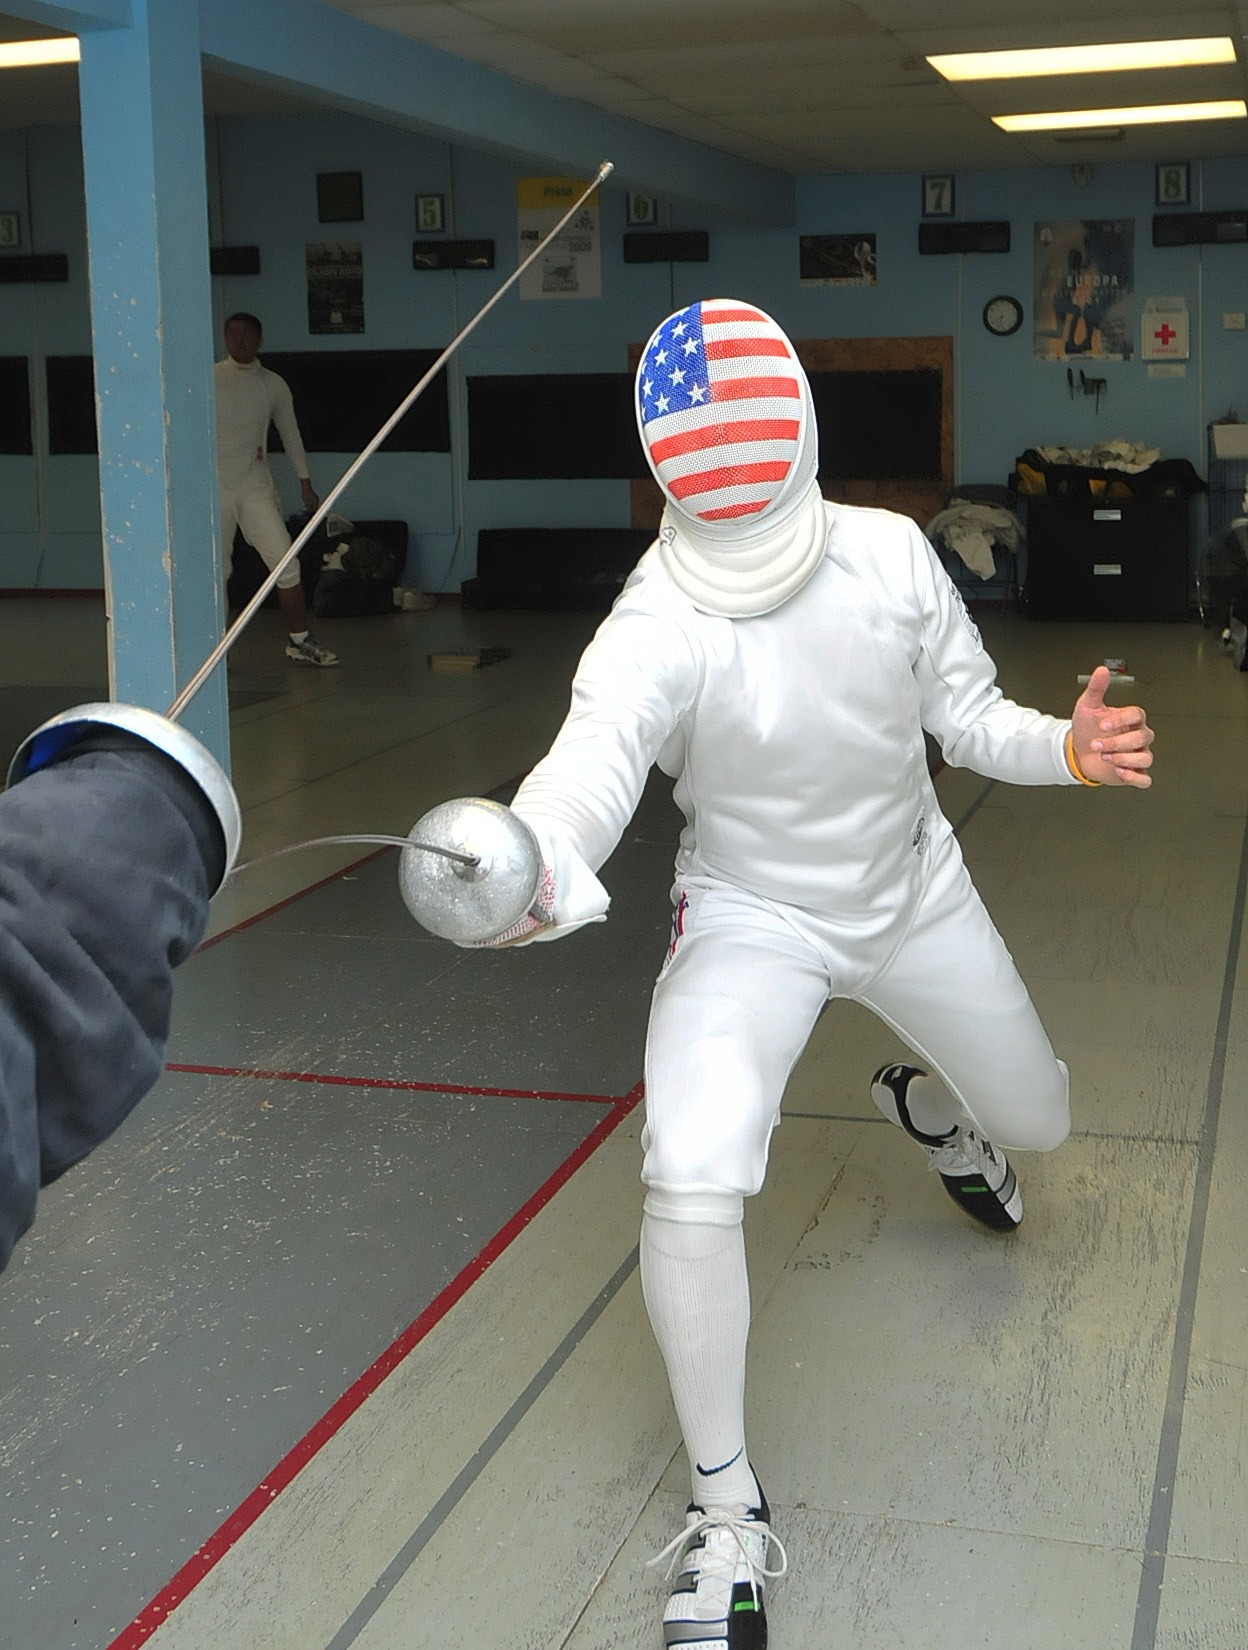 Chronicle makes a with point Houston Teen fencing success AL354Rj